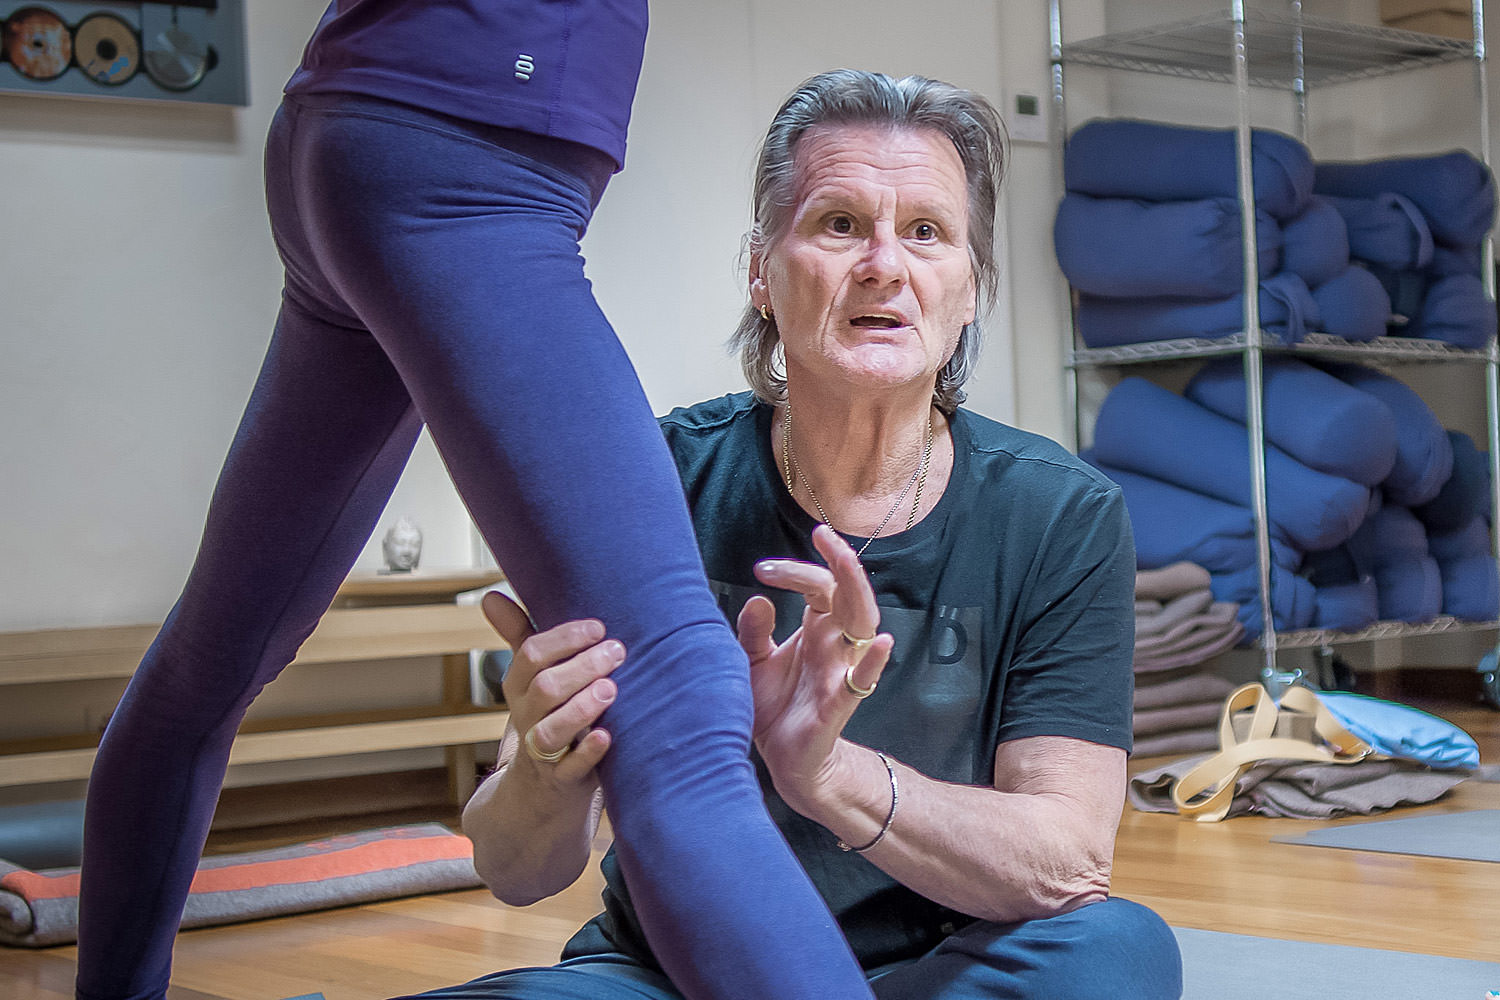 Chad Hamrin brings in extensive knowledge of teaching for more than 40 years make the workshops and Masterclass of basic and more advanced asanas.